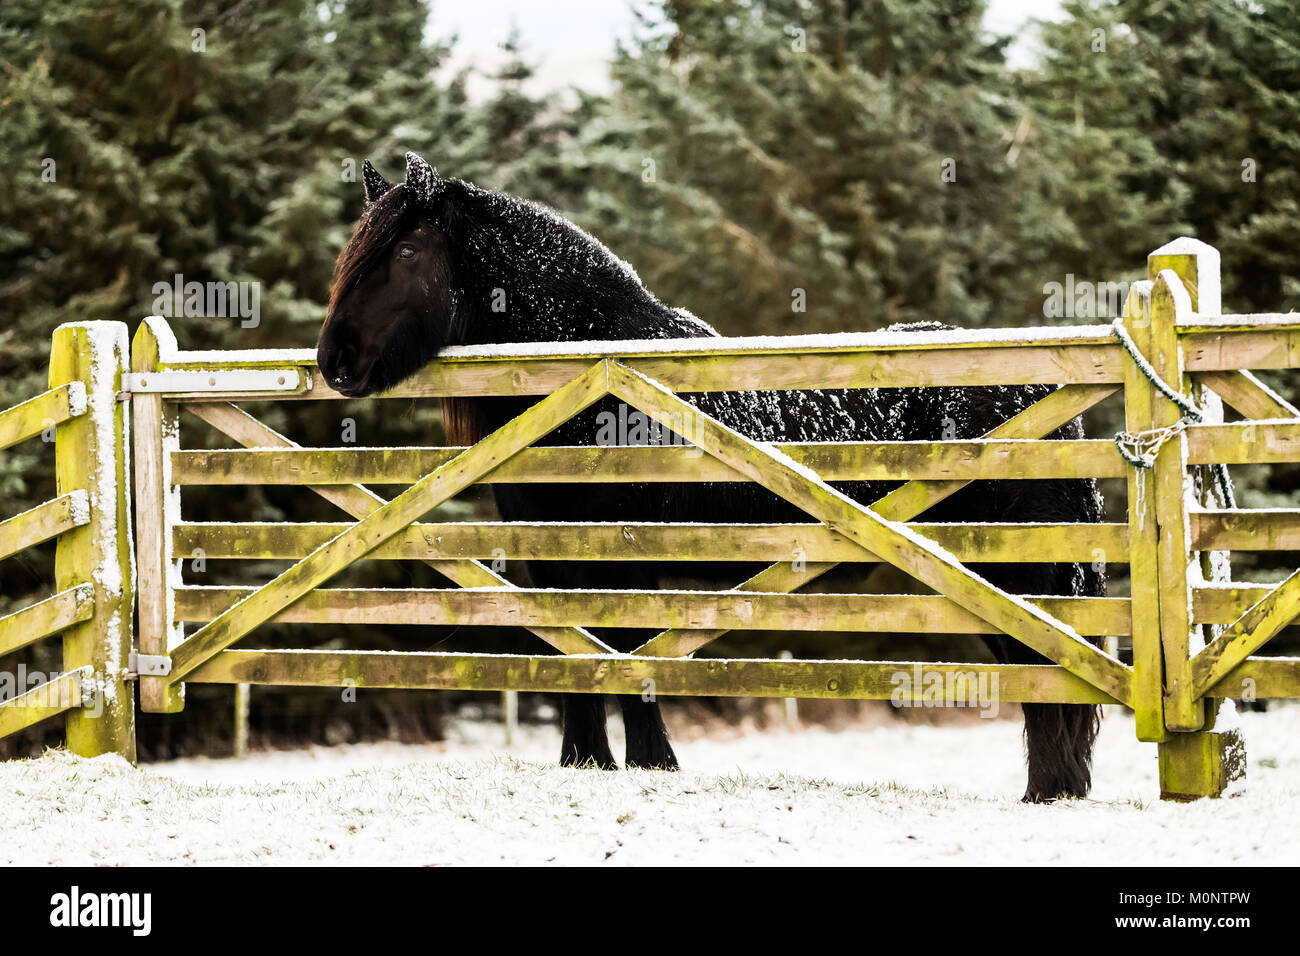 Hownam, Jedburgh, Scottish Borders, UK. 16th January 2018. A fell pony stands by a gate in a snow covered field - Stock Image